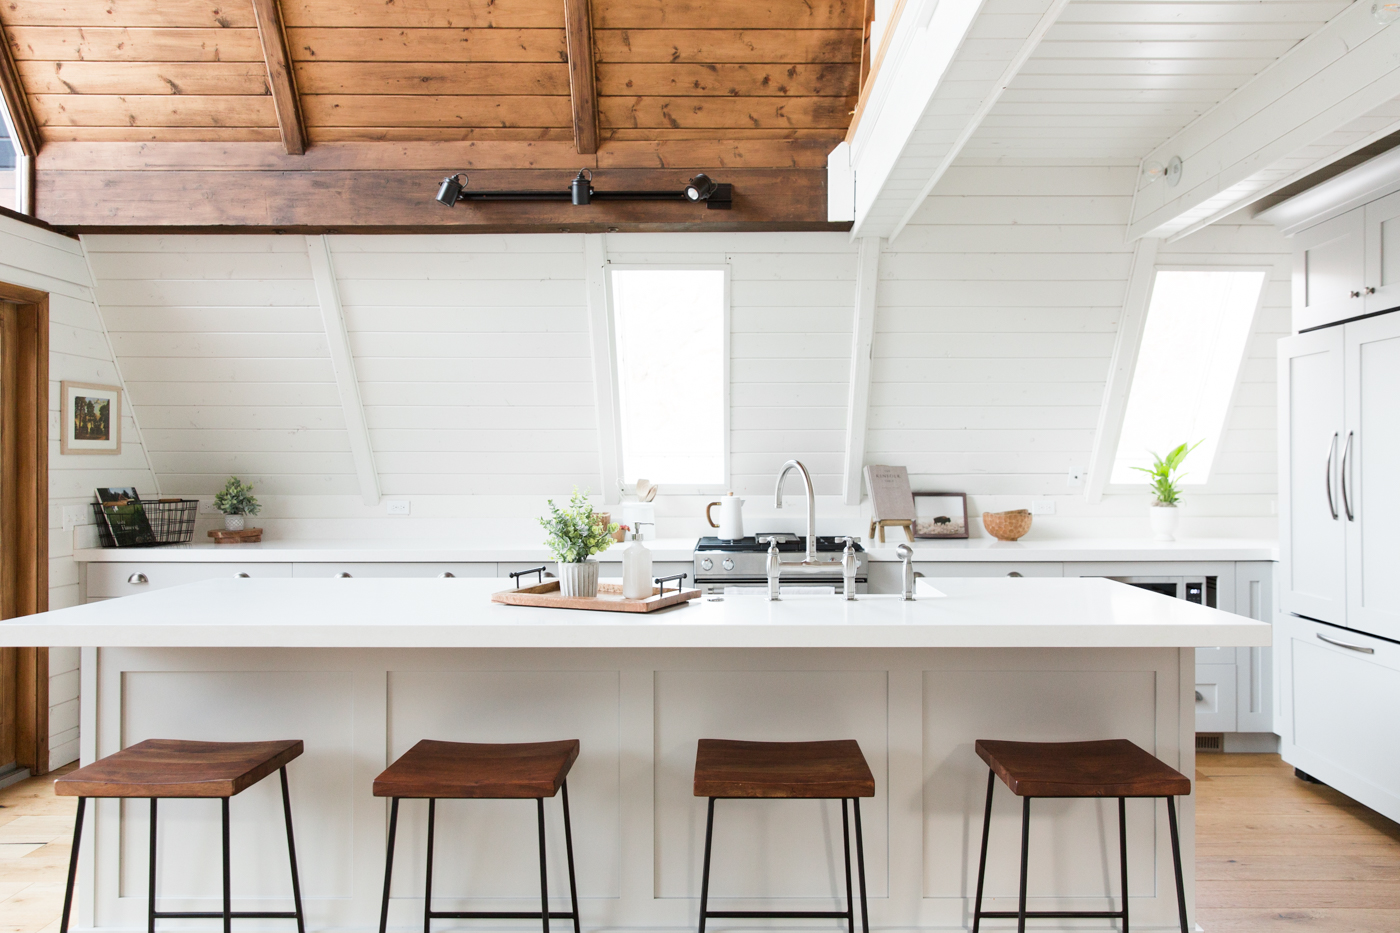 White a-frame kitchen